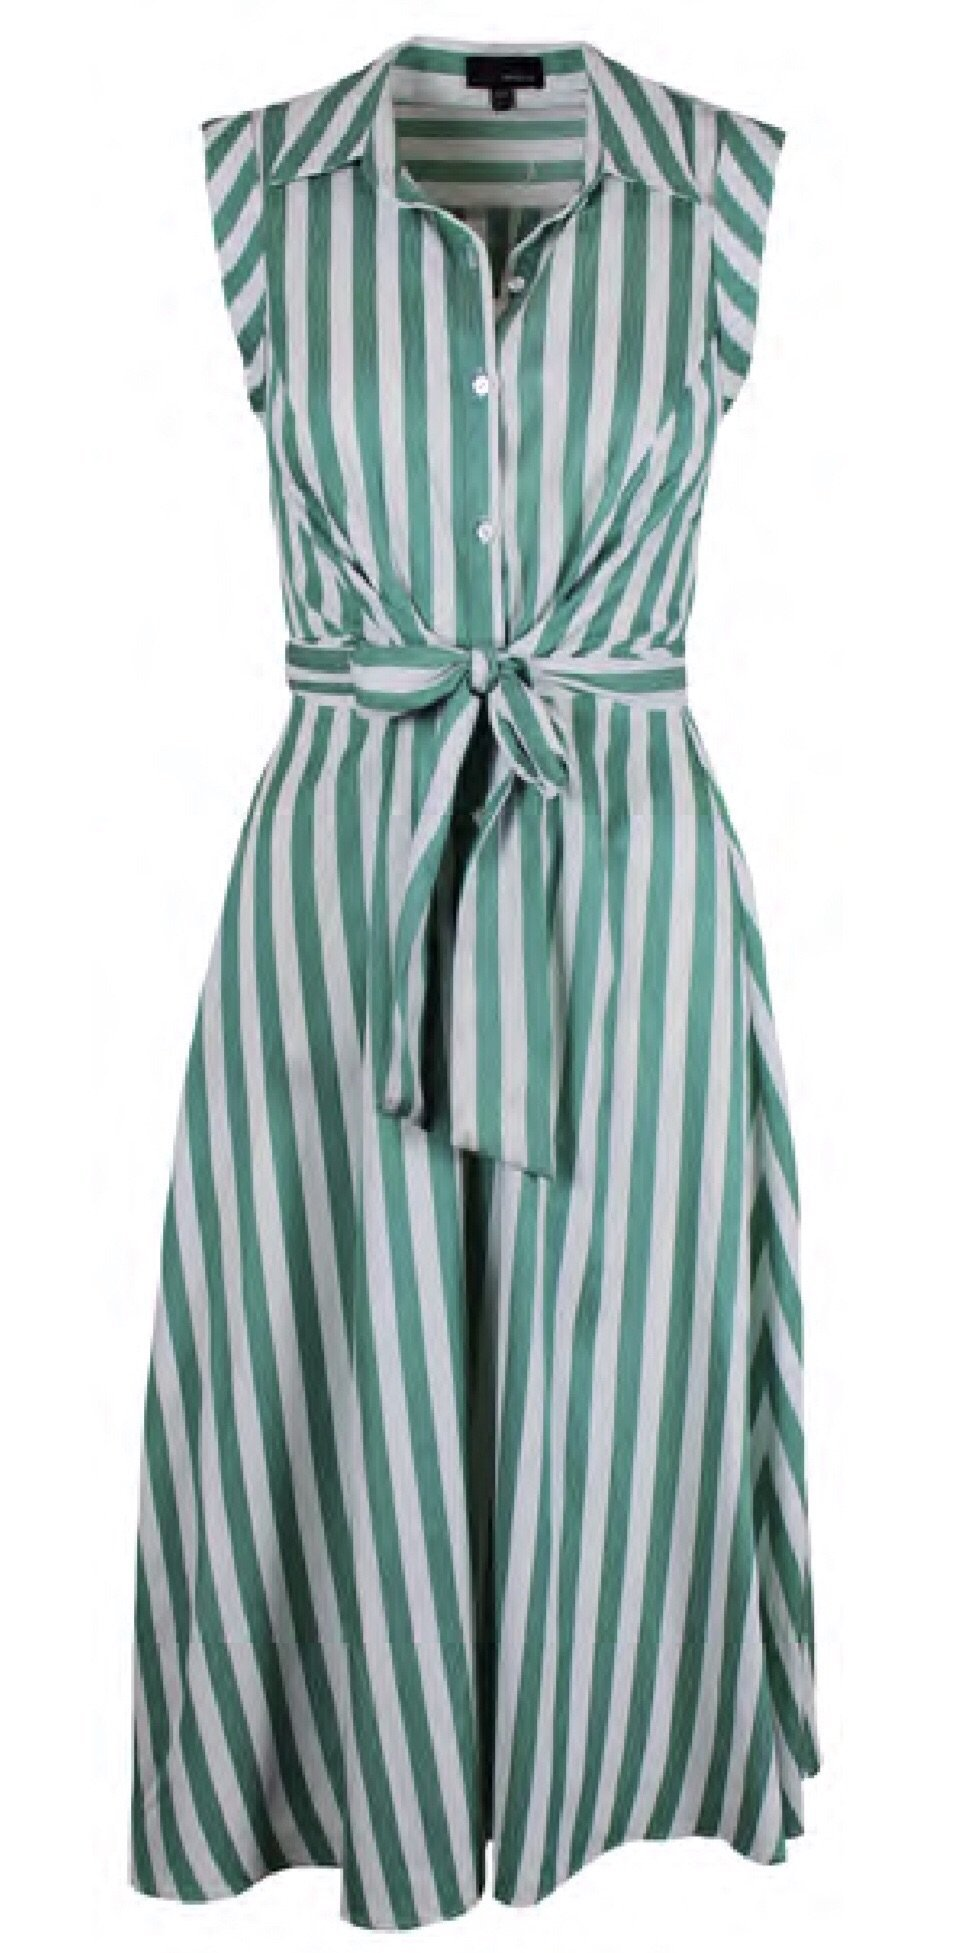 Indie Stripe Dress Lucy Paris